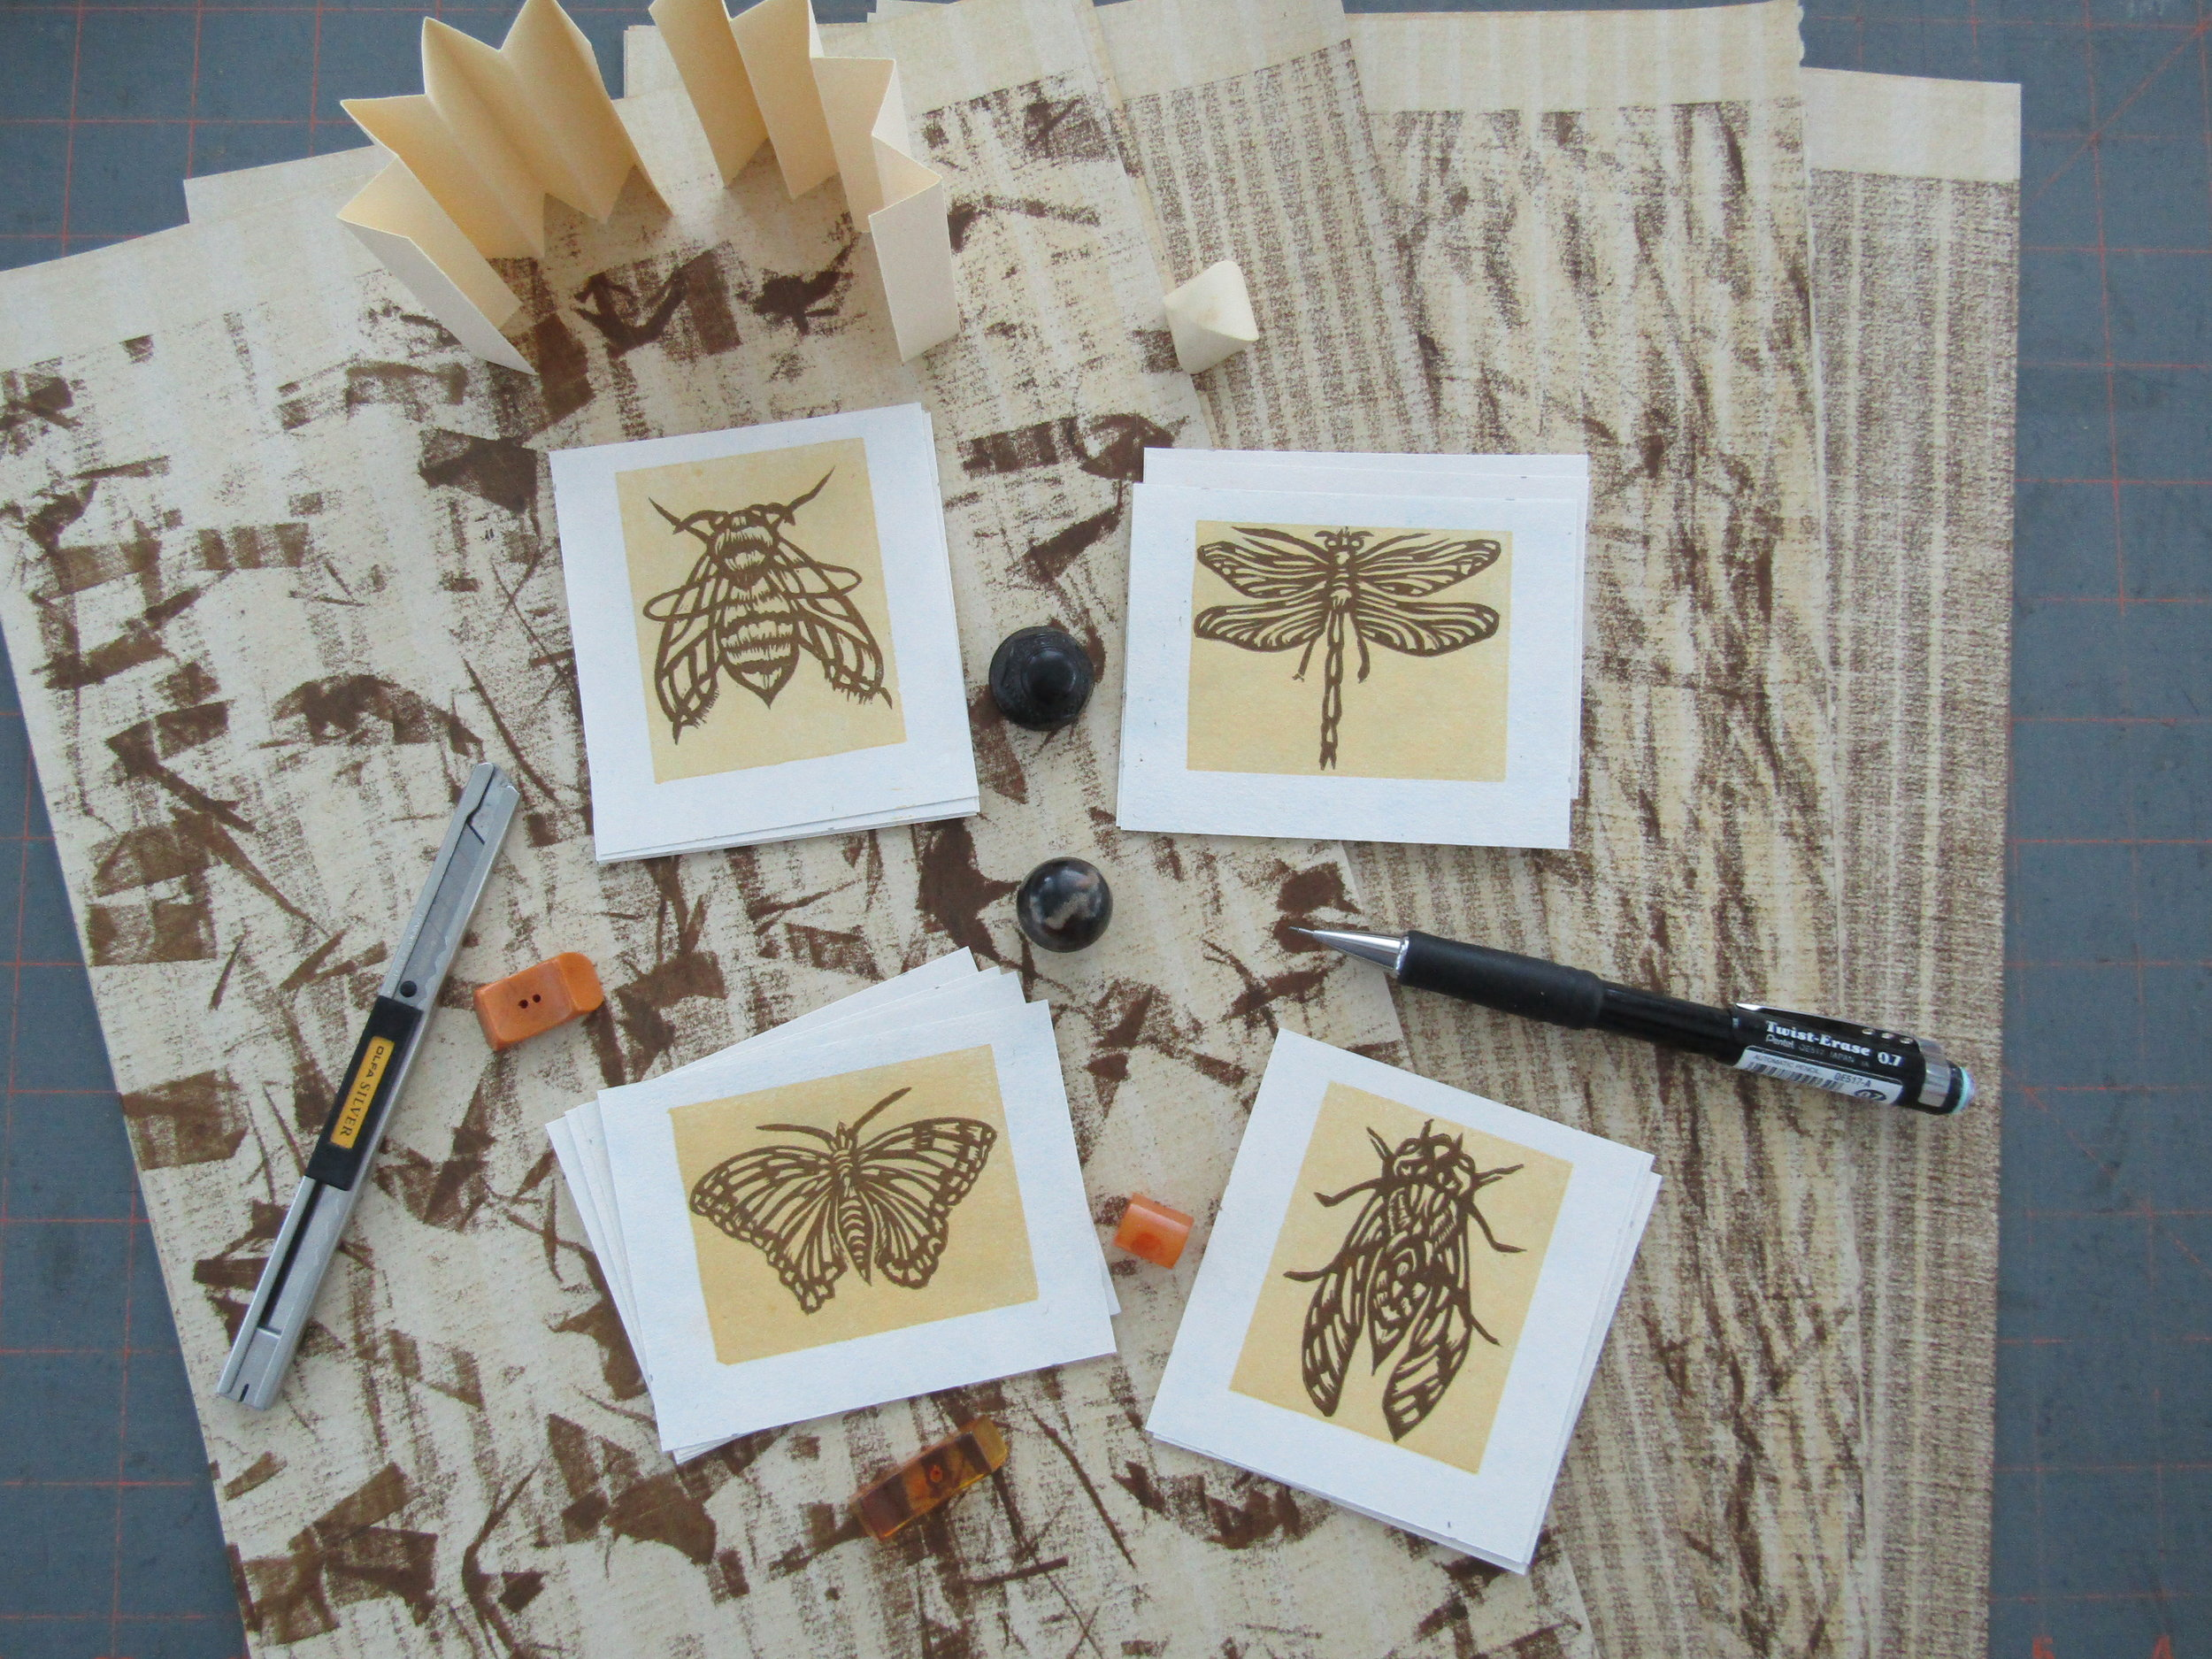 Insect prints completed, pressure prints completed (on Niddeggen paper). I will now begin designing and building the reliquaries. I love playing around with the various components!